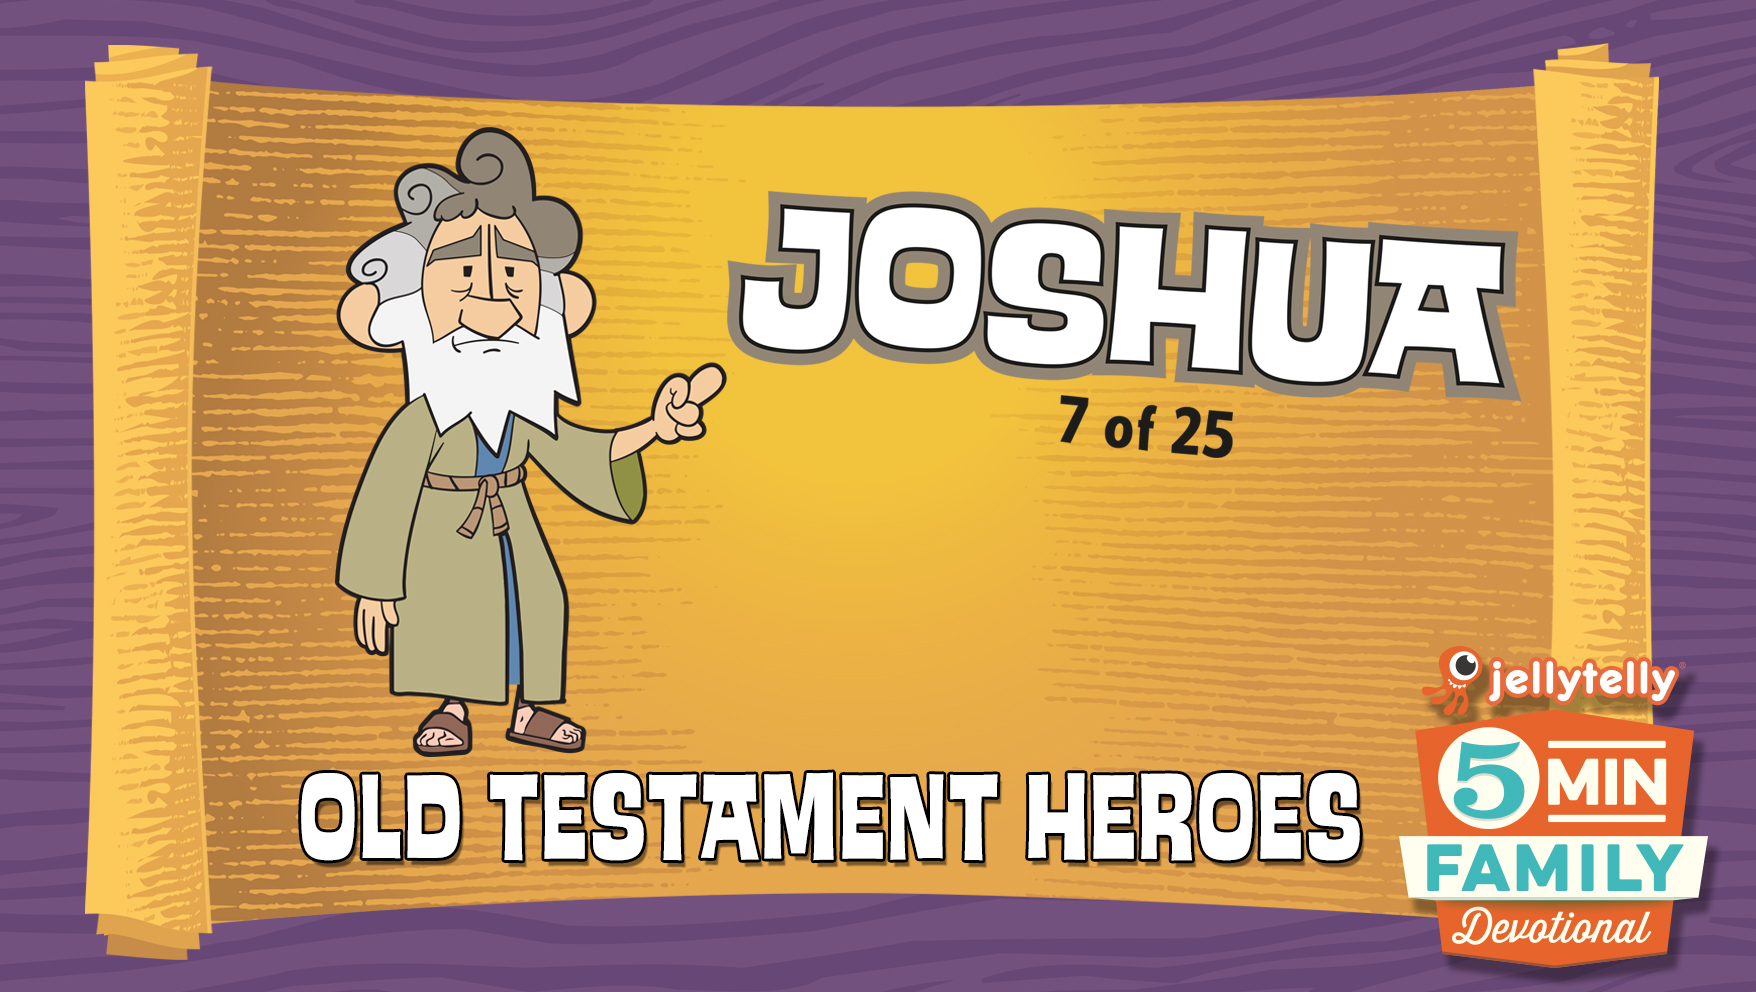 Joshua: Old Testament Heroes - 5 Minute Family Devotional